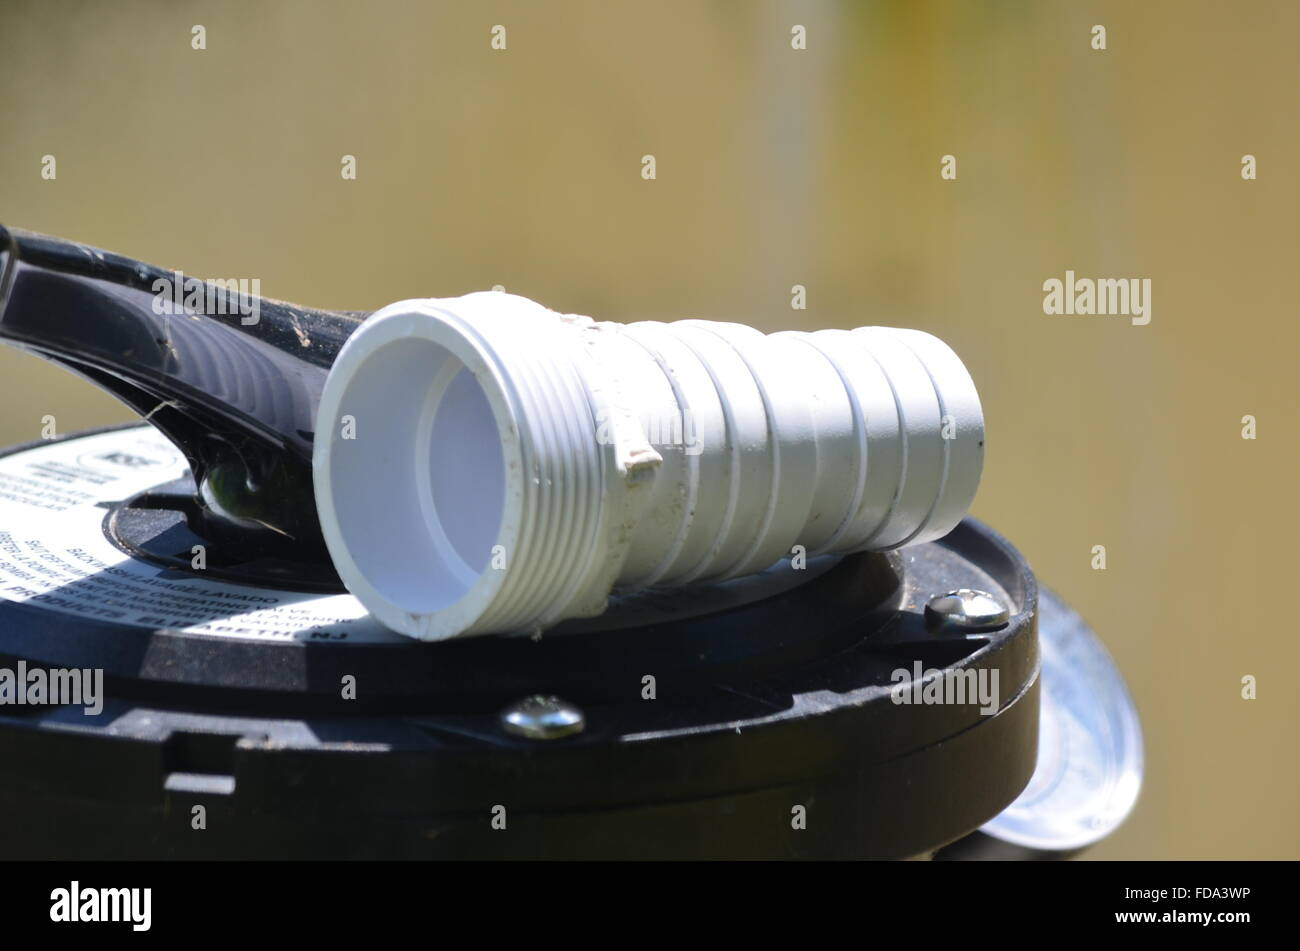 Plastic fitting for a pool filter - Stock Image